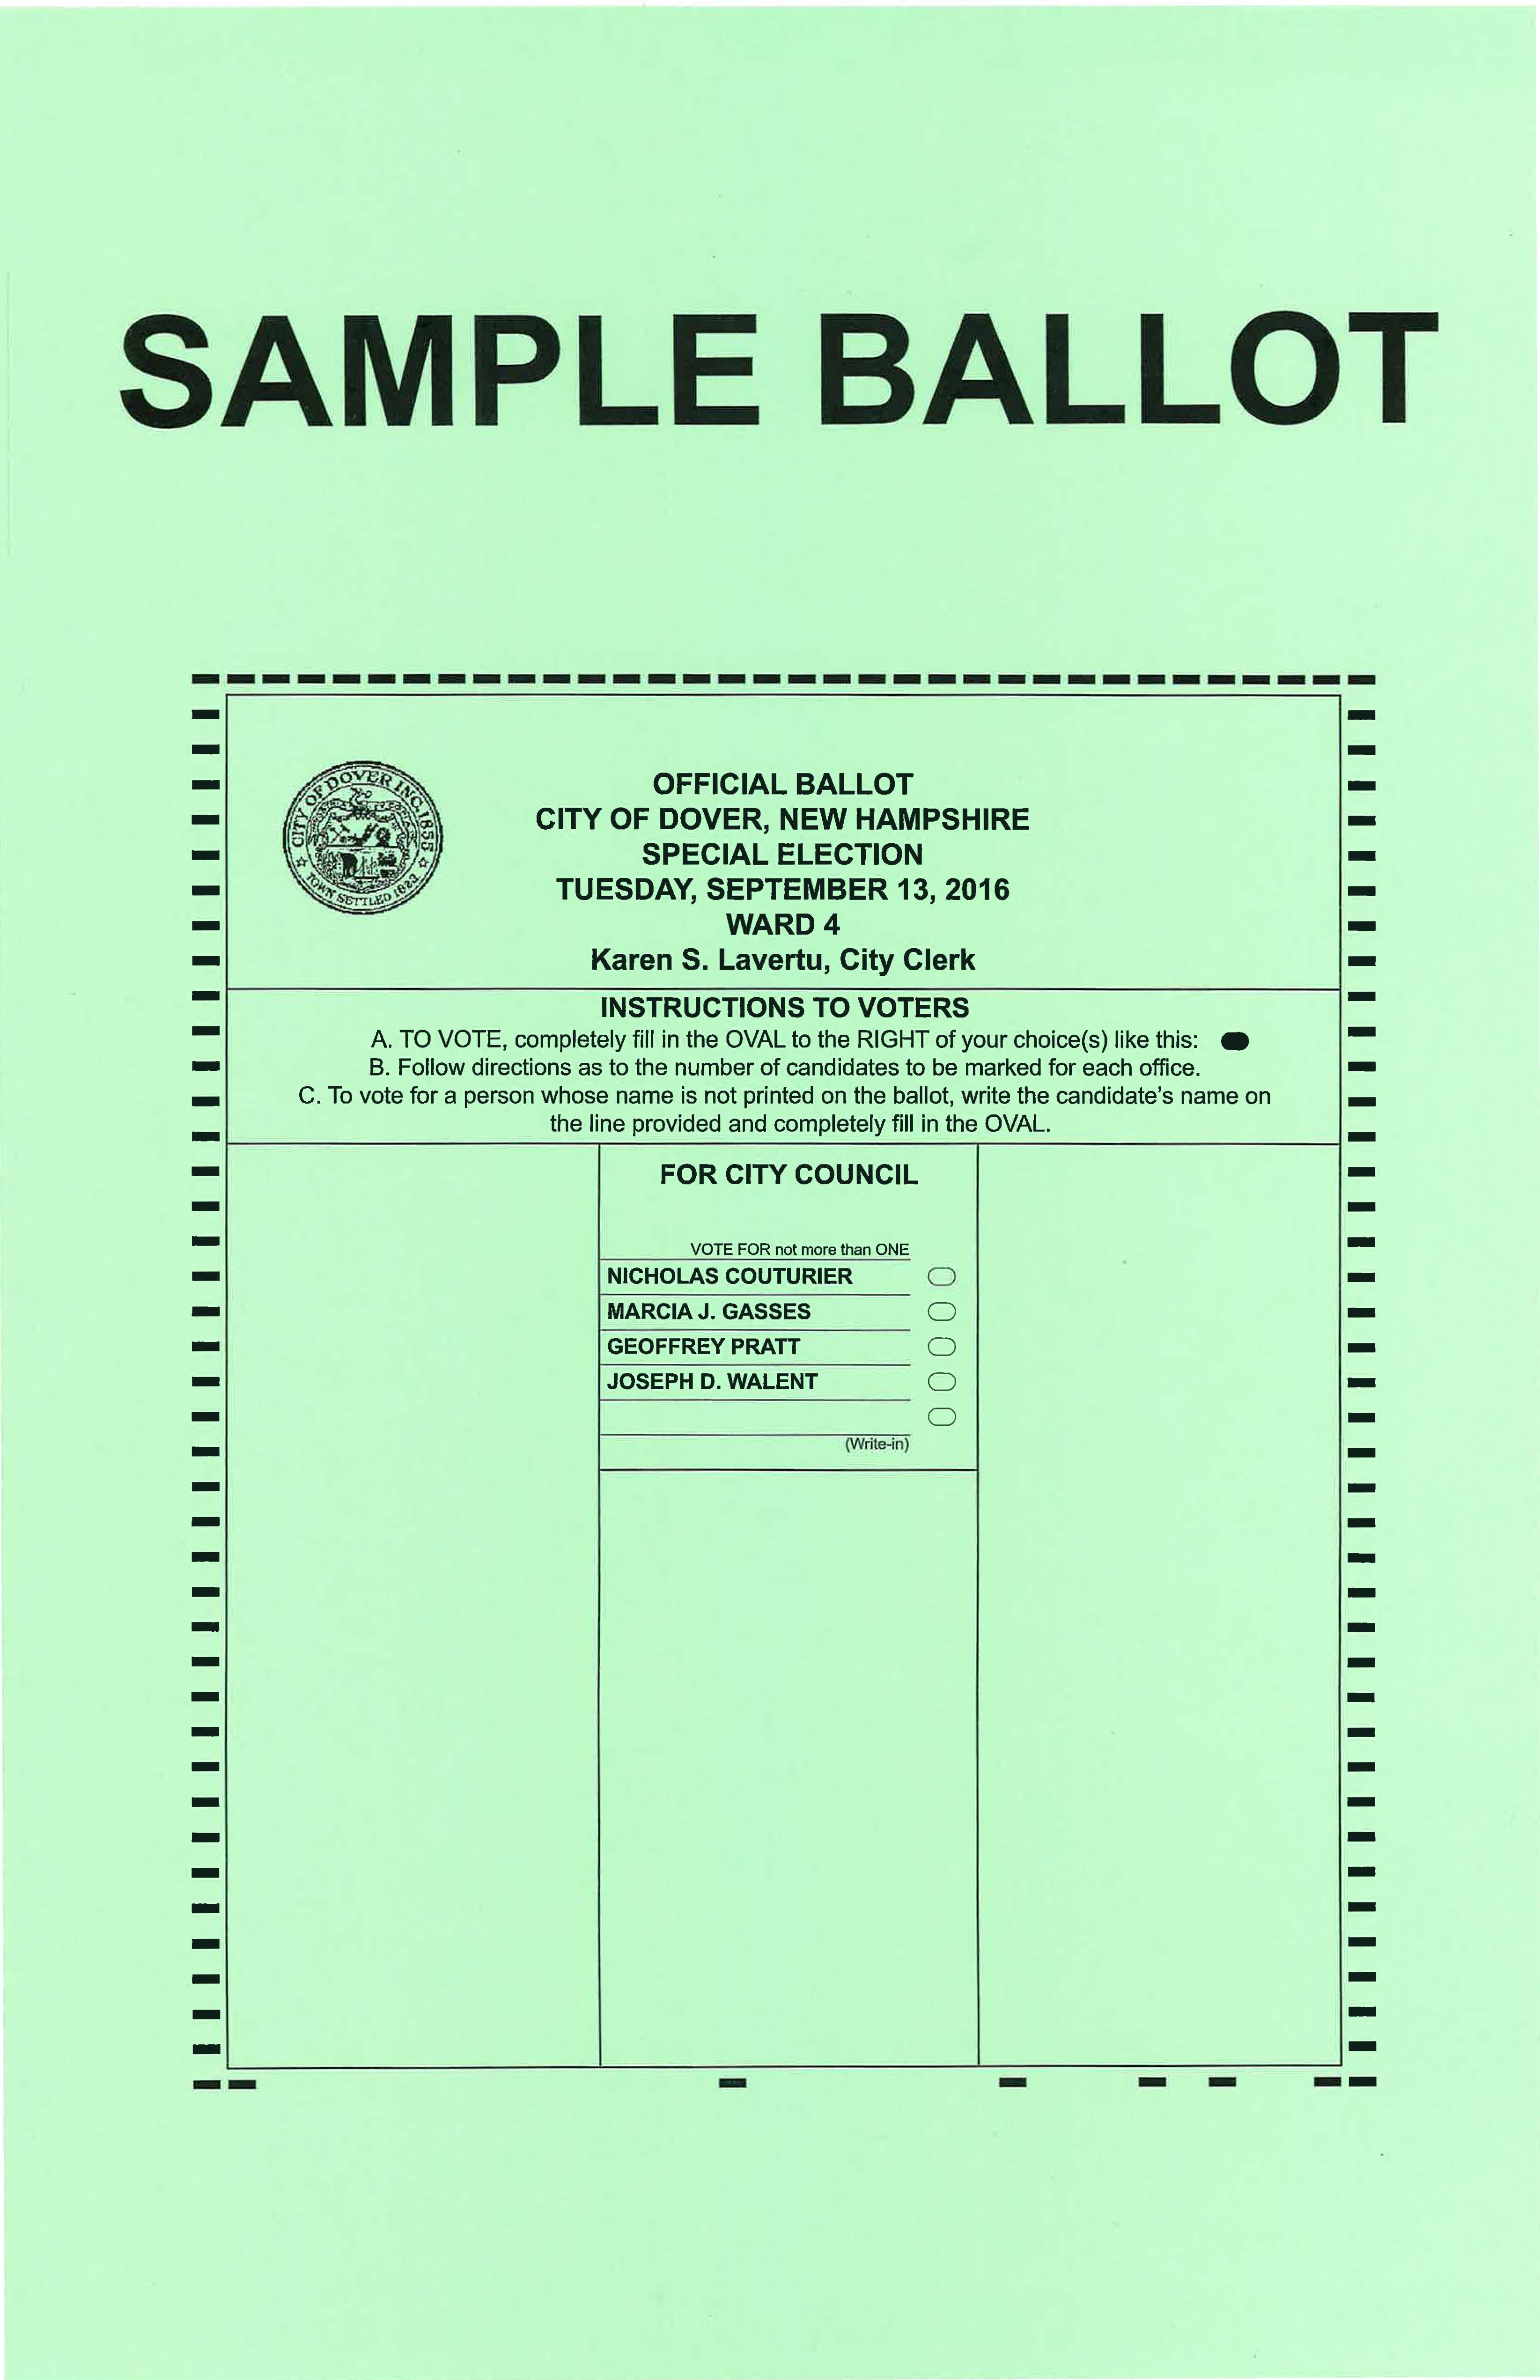 Ward 4 2016 Special Election Sample Ballot